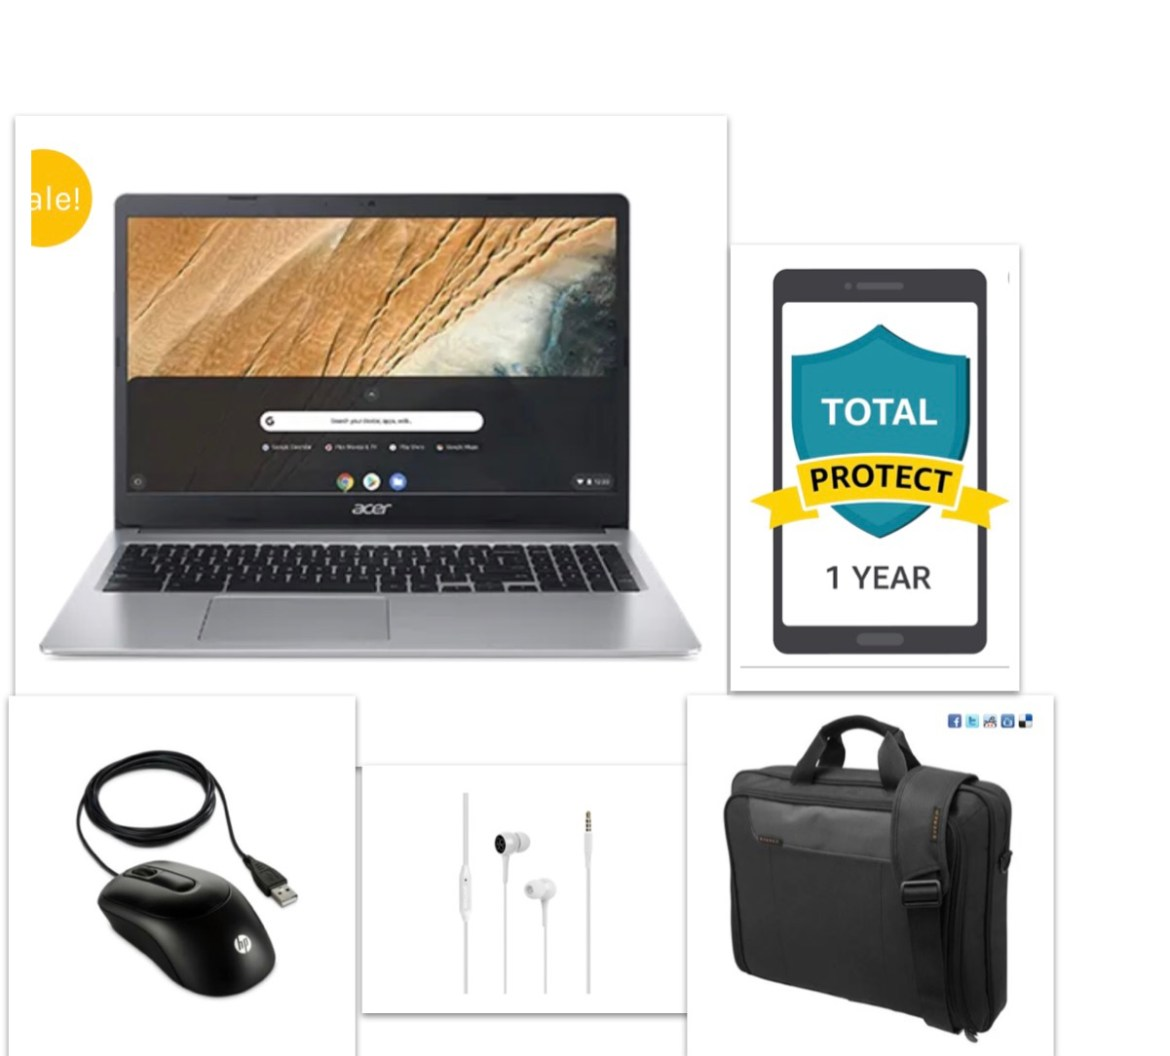 New Acer 15.6 Chromebook Bundle – Chromebook+Bag+Ear Phone+Mouse+12 Month Damage Protection